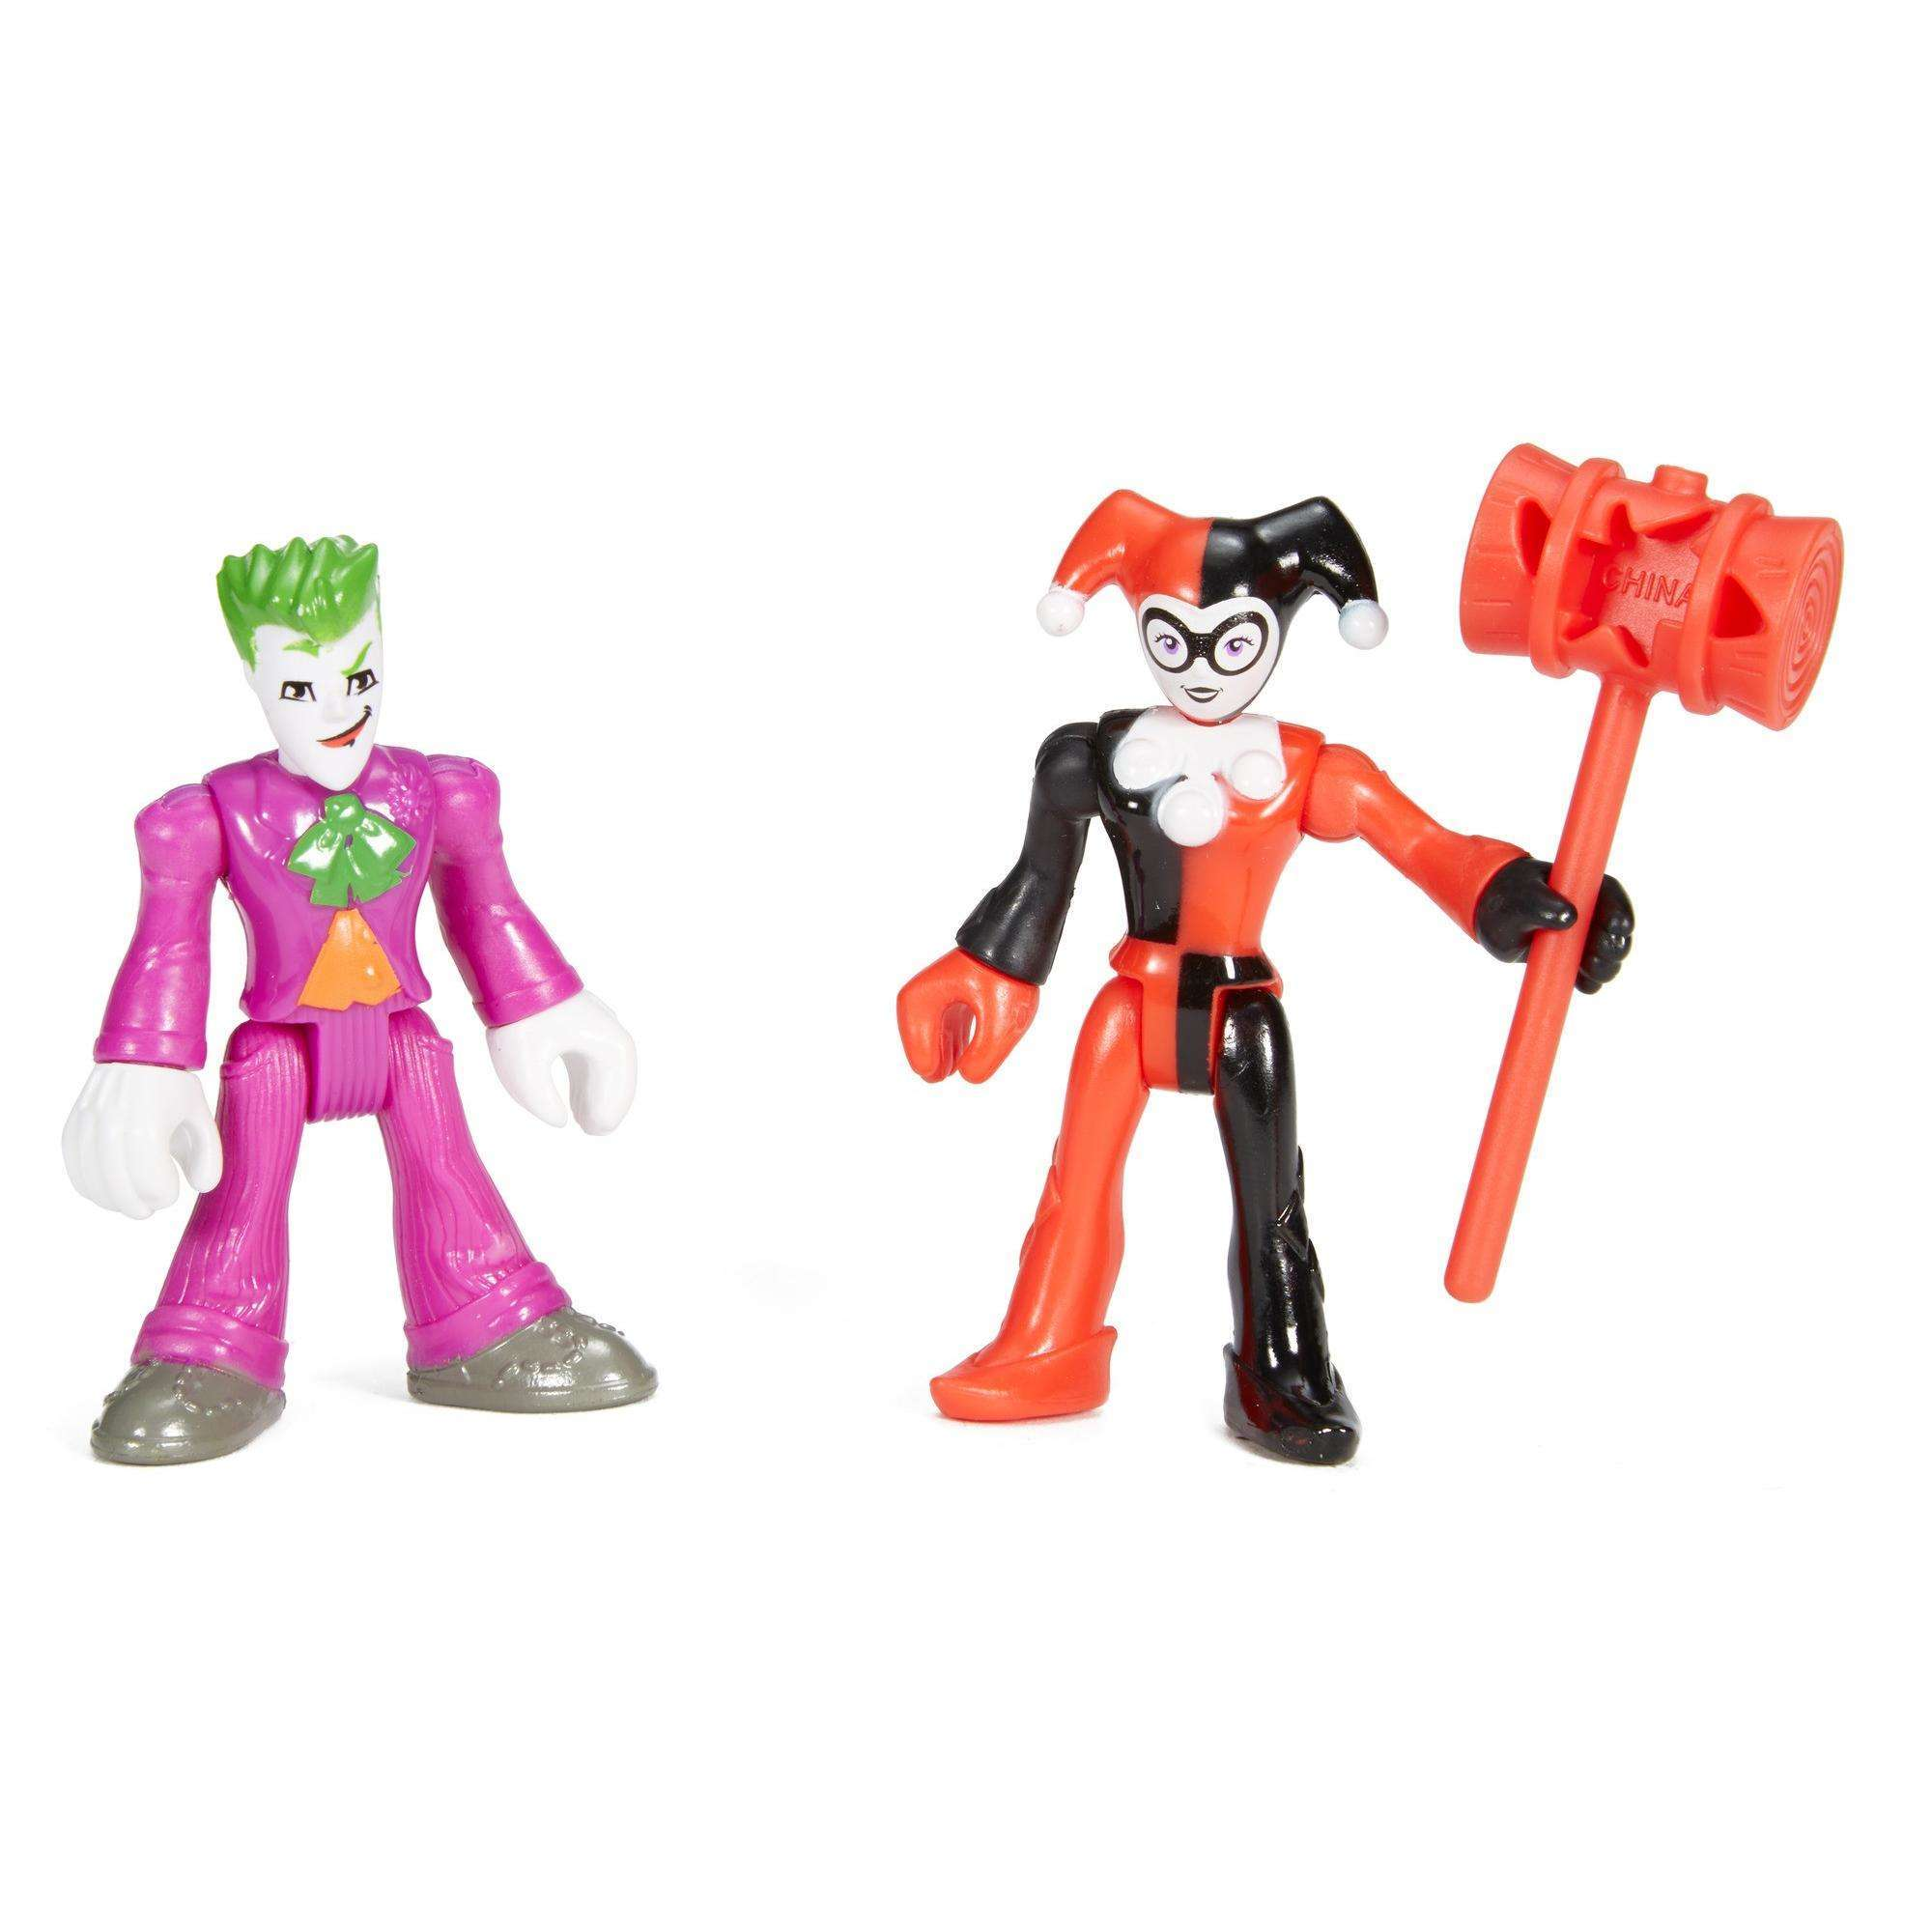 IMaginext DC Super Friends The Joker & Harley Quinn by FISHER PRICE